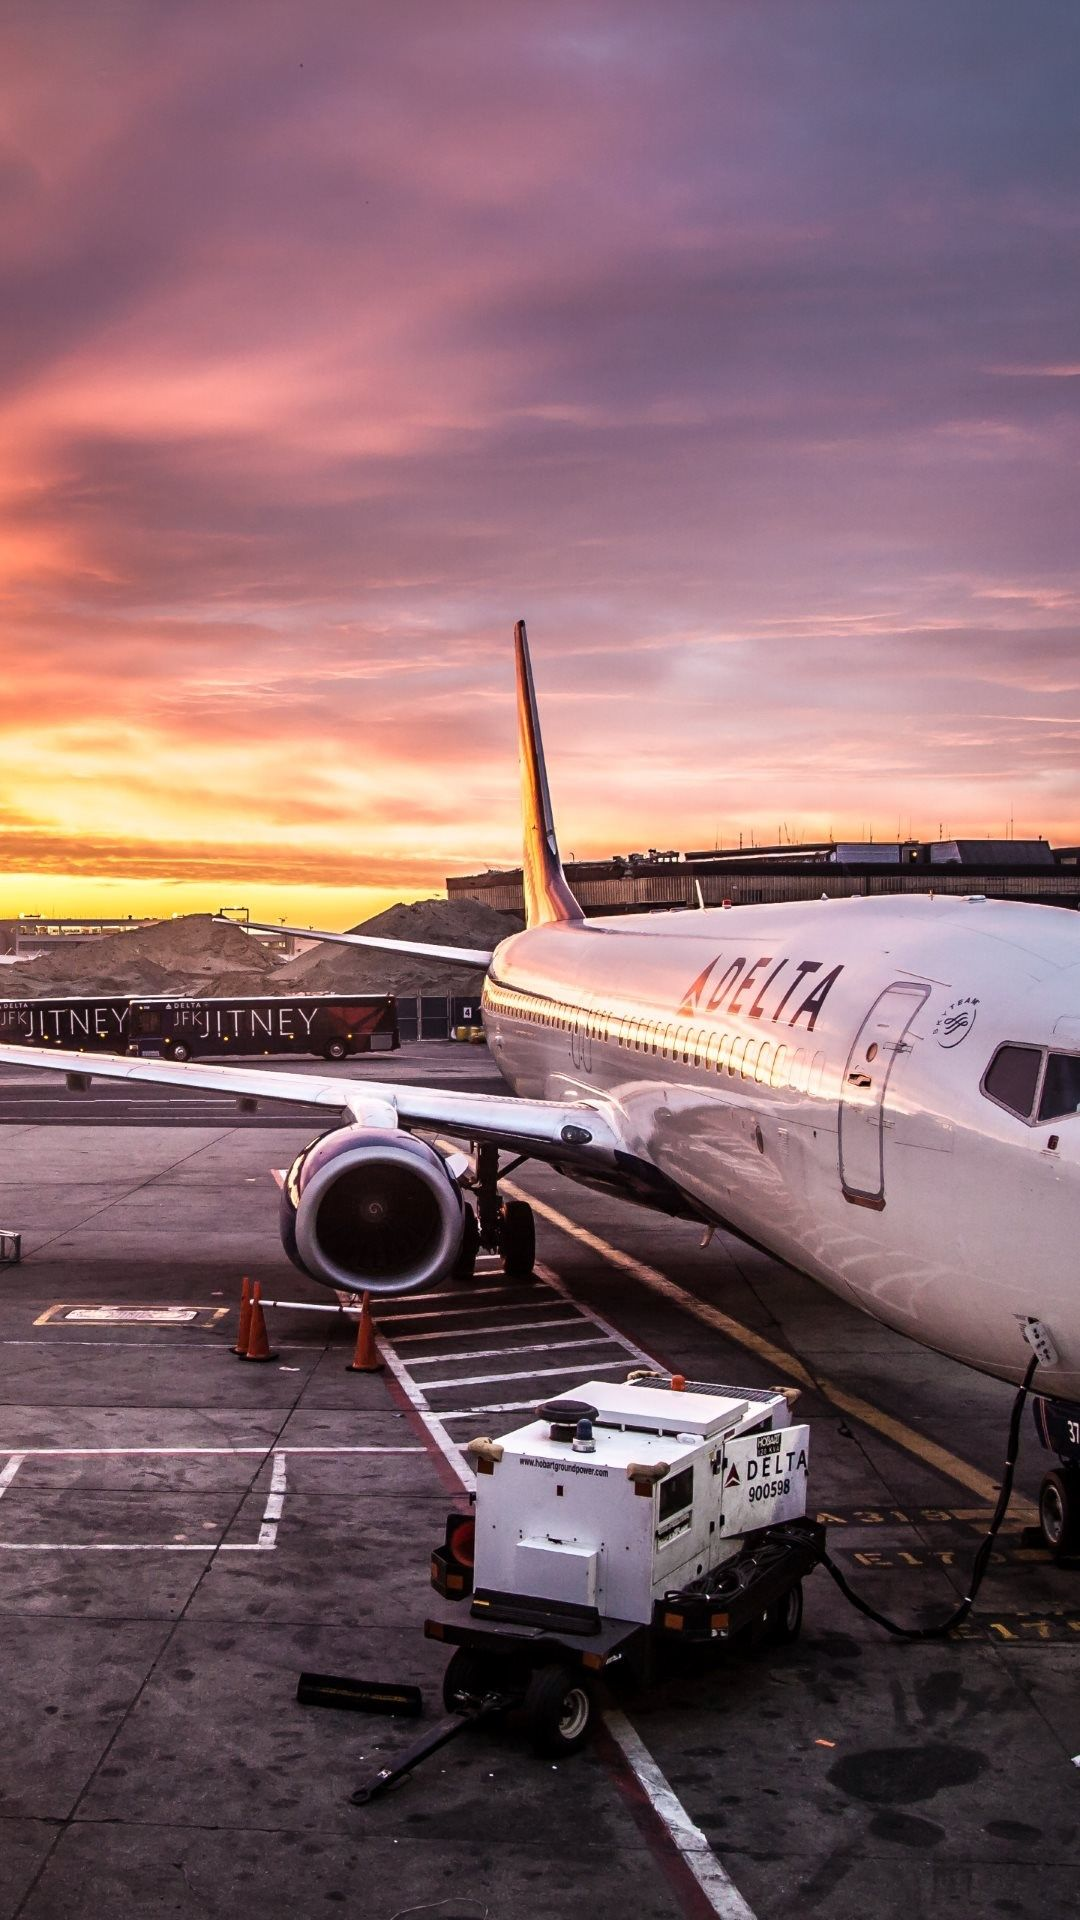 delta airline airplane on jfk airport iphone wallpaper